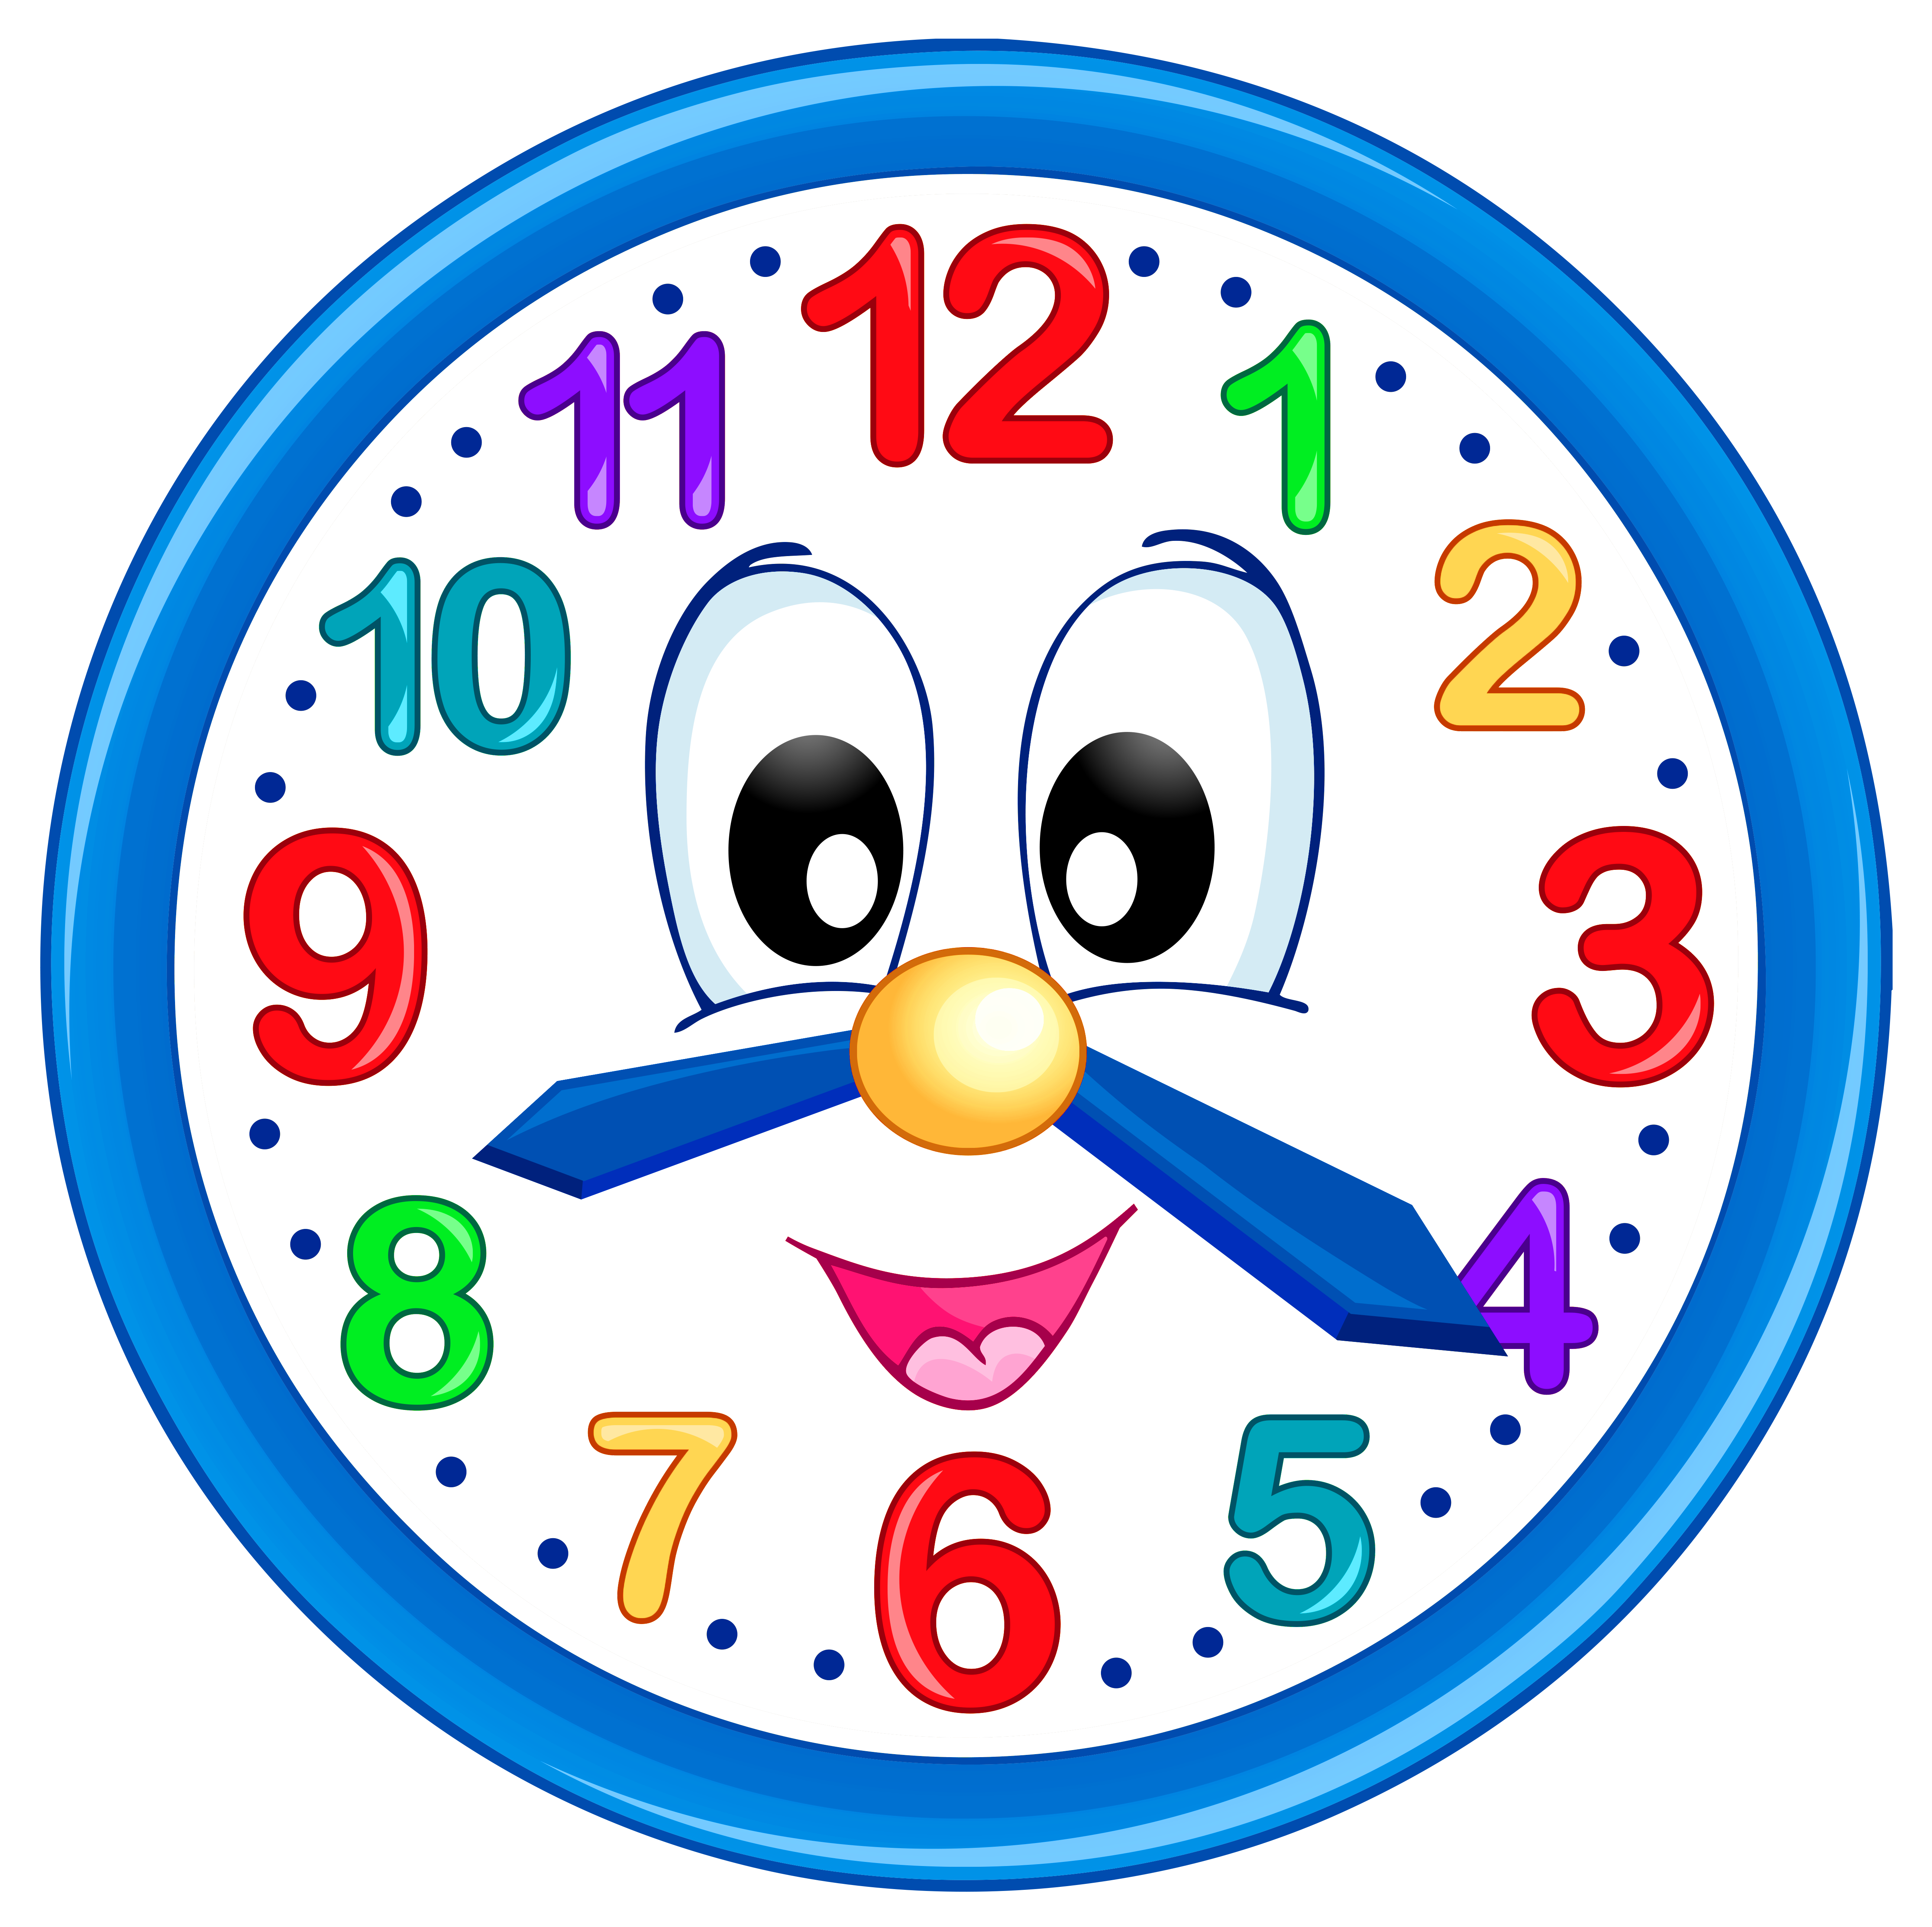 Clipart clock 12 am, Picture #452928 clipart clock 12 am.